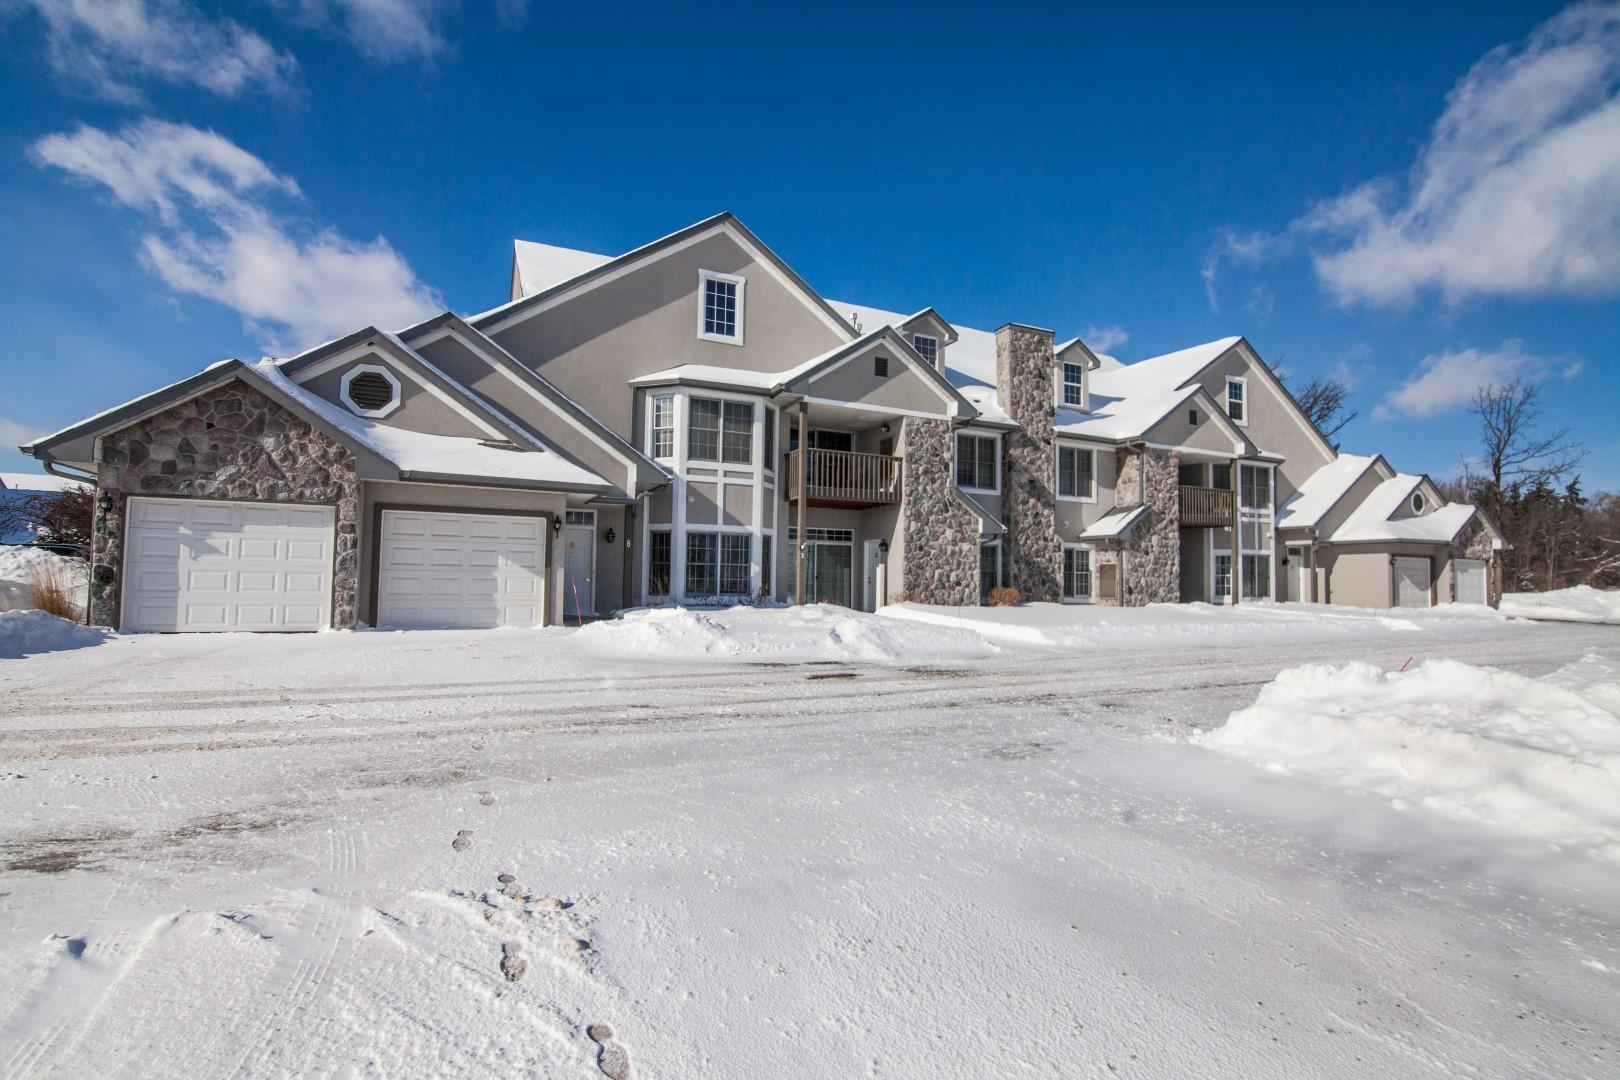 N30W23027 Pine View Cir, Pewaukee, Wisconsin 53072, 2 Bedrooms Bedrooms, 5 Rooms Rooms,2 BathroomsBathrooms,Condominiums,For Sale,Pine View Cir,1,1621389